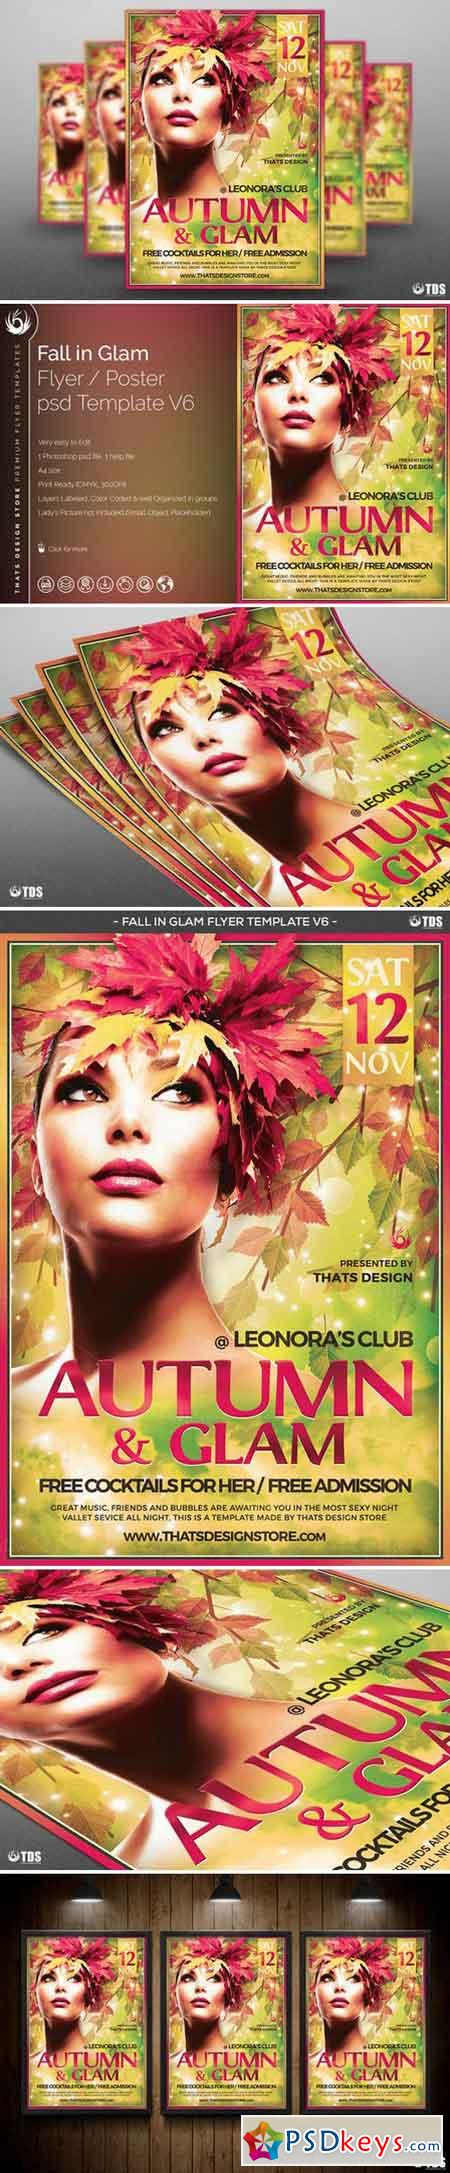 Fall in Glam Flyer Template V6 885779